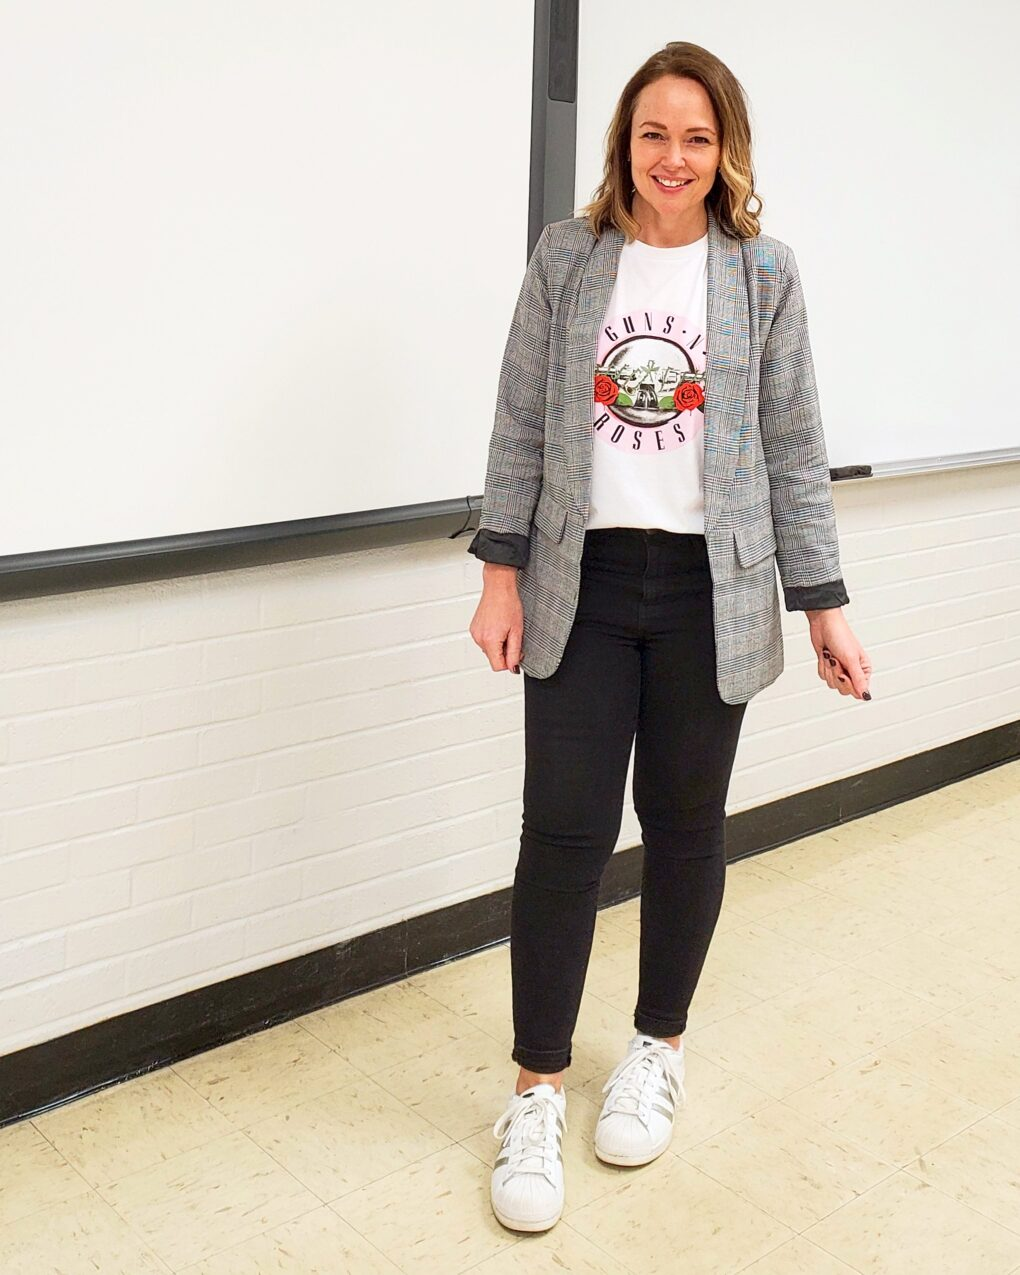 Teacher outfit with plaid blazer, rock band tee, black jeans, and white sneakers